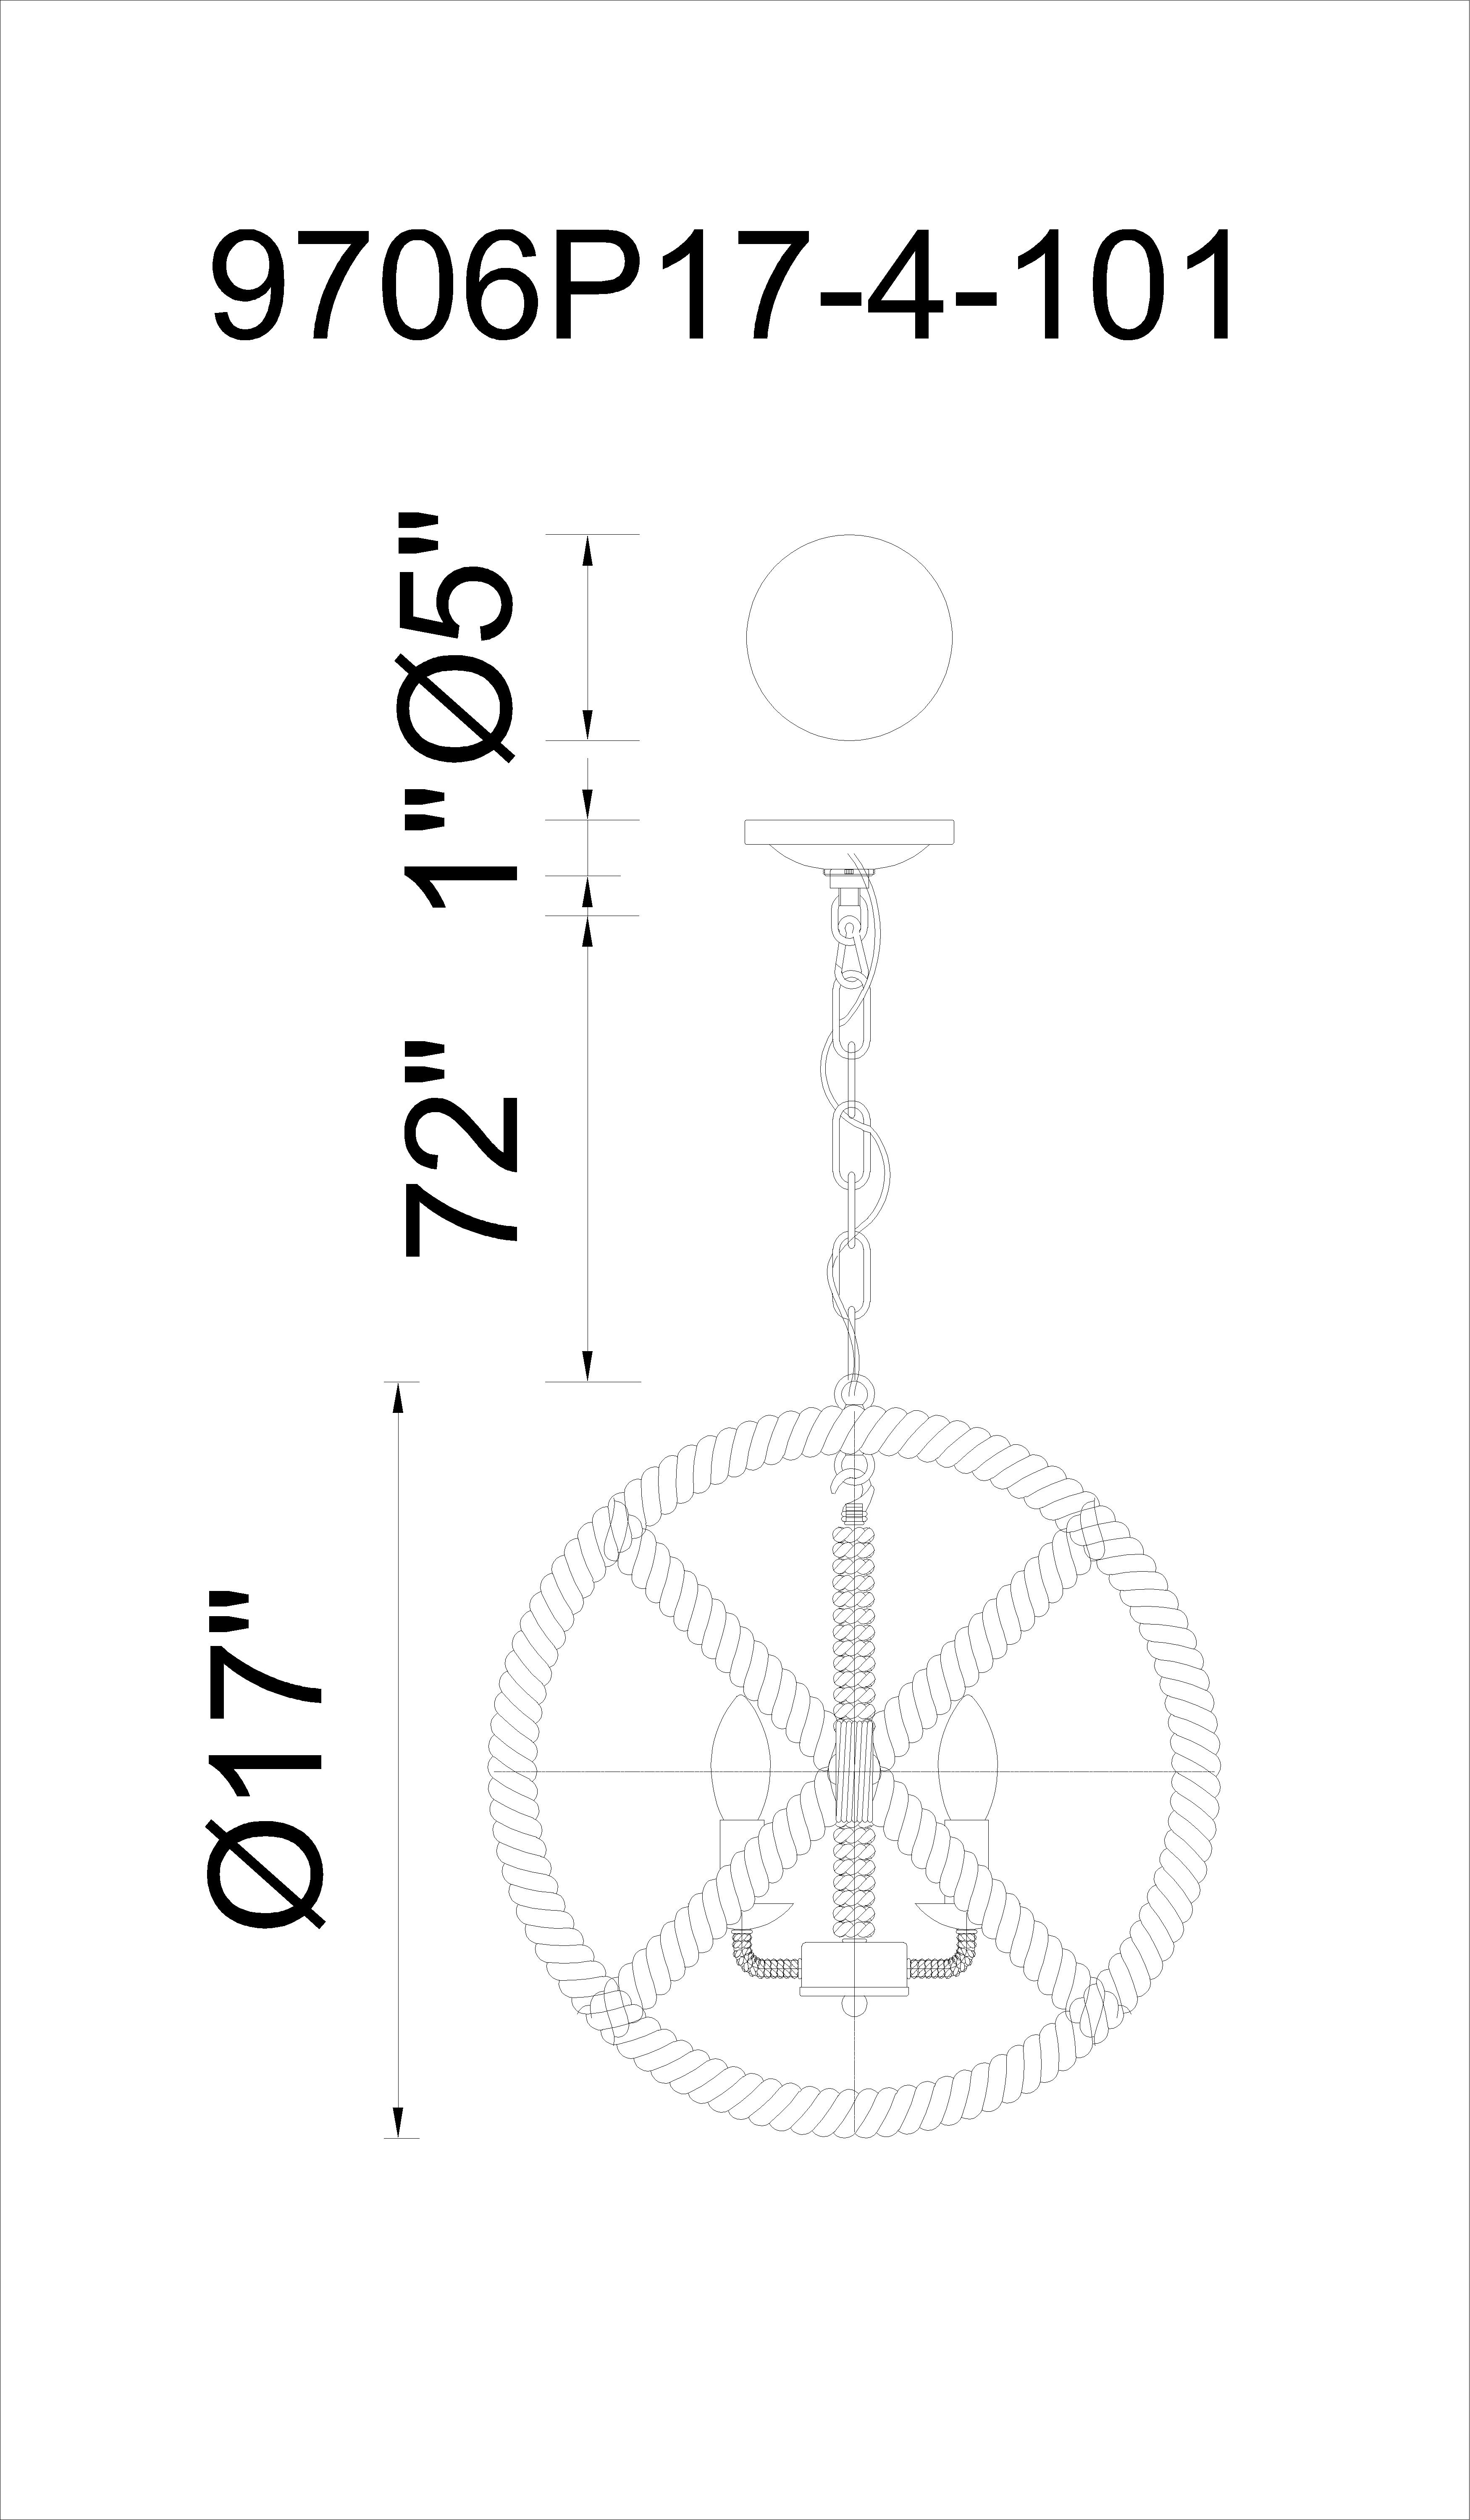 CWI Lighting Padma 4 Light Up Chandelier With Black Finish Model: 9706P17-4-101 Line Drawing